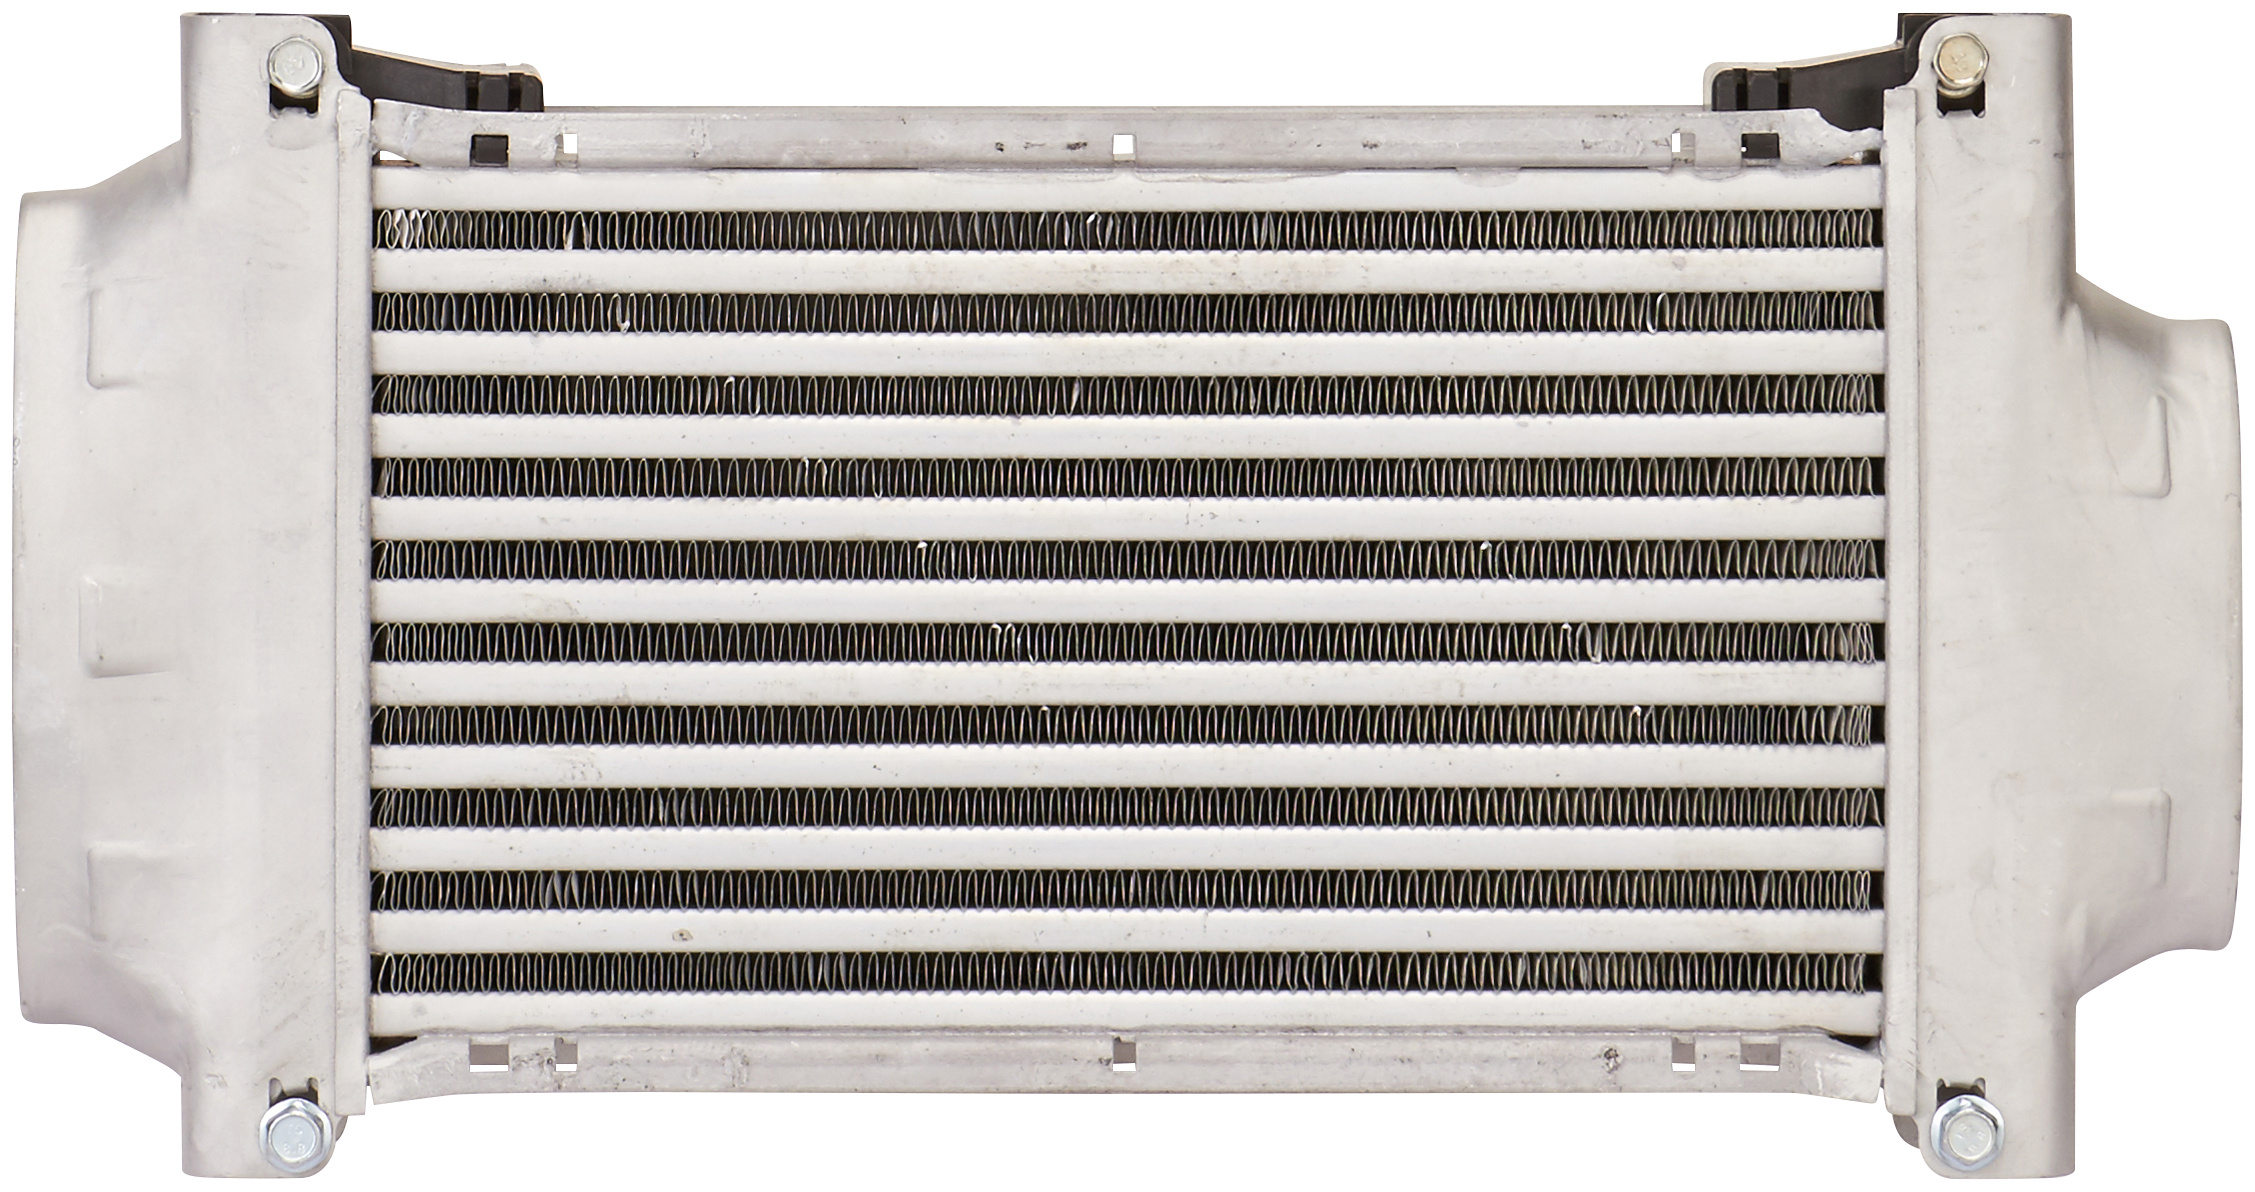 Supercharger Intercooler